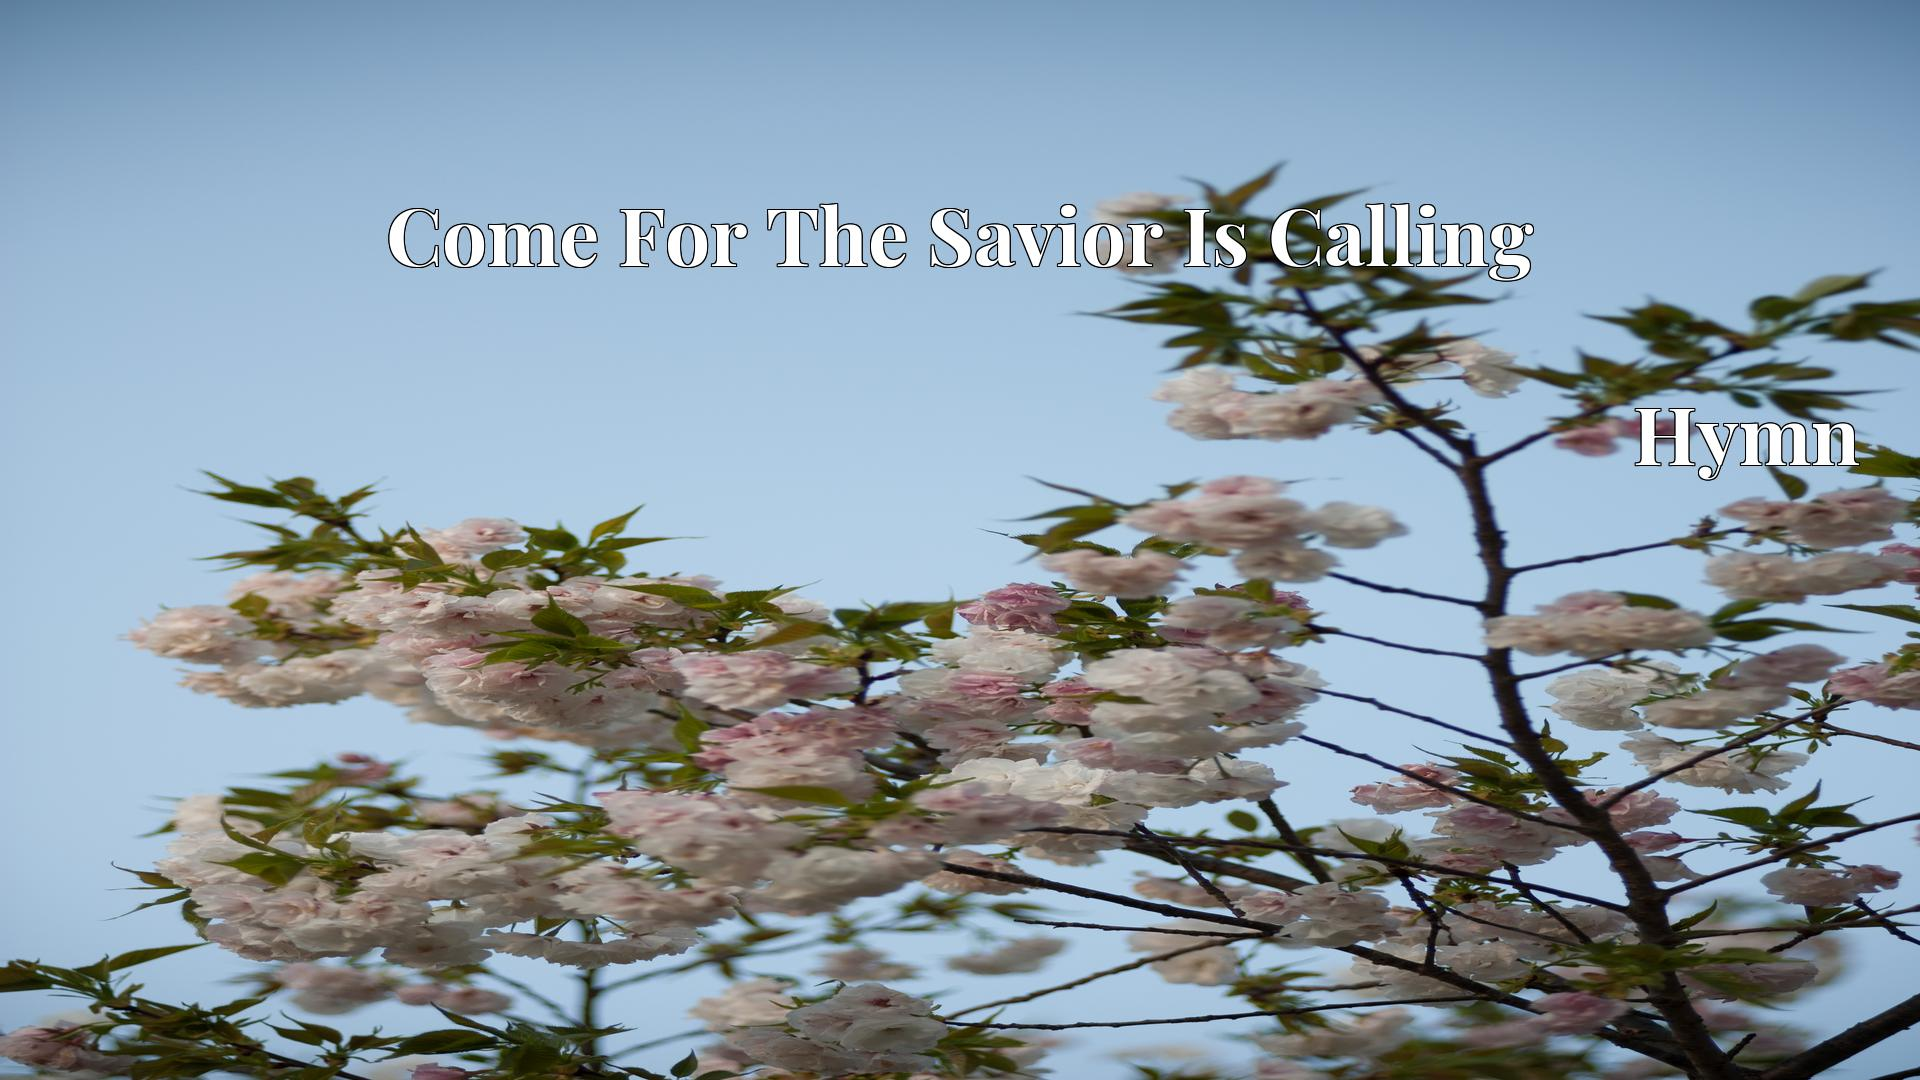 Come For The Savior Is Calling - Hymn